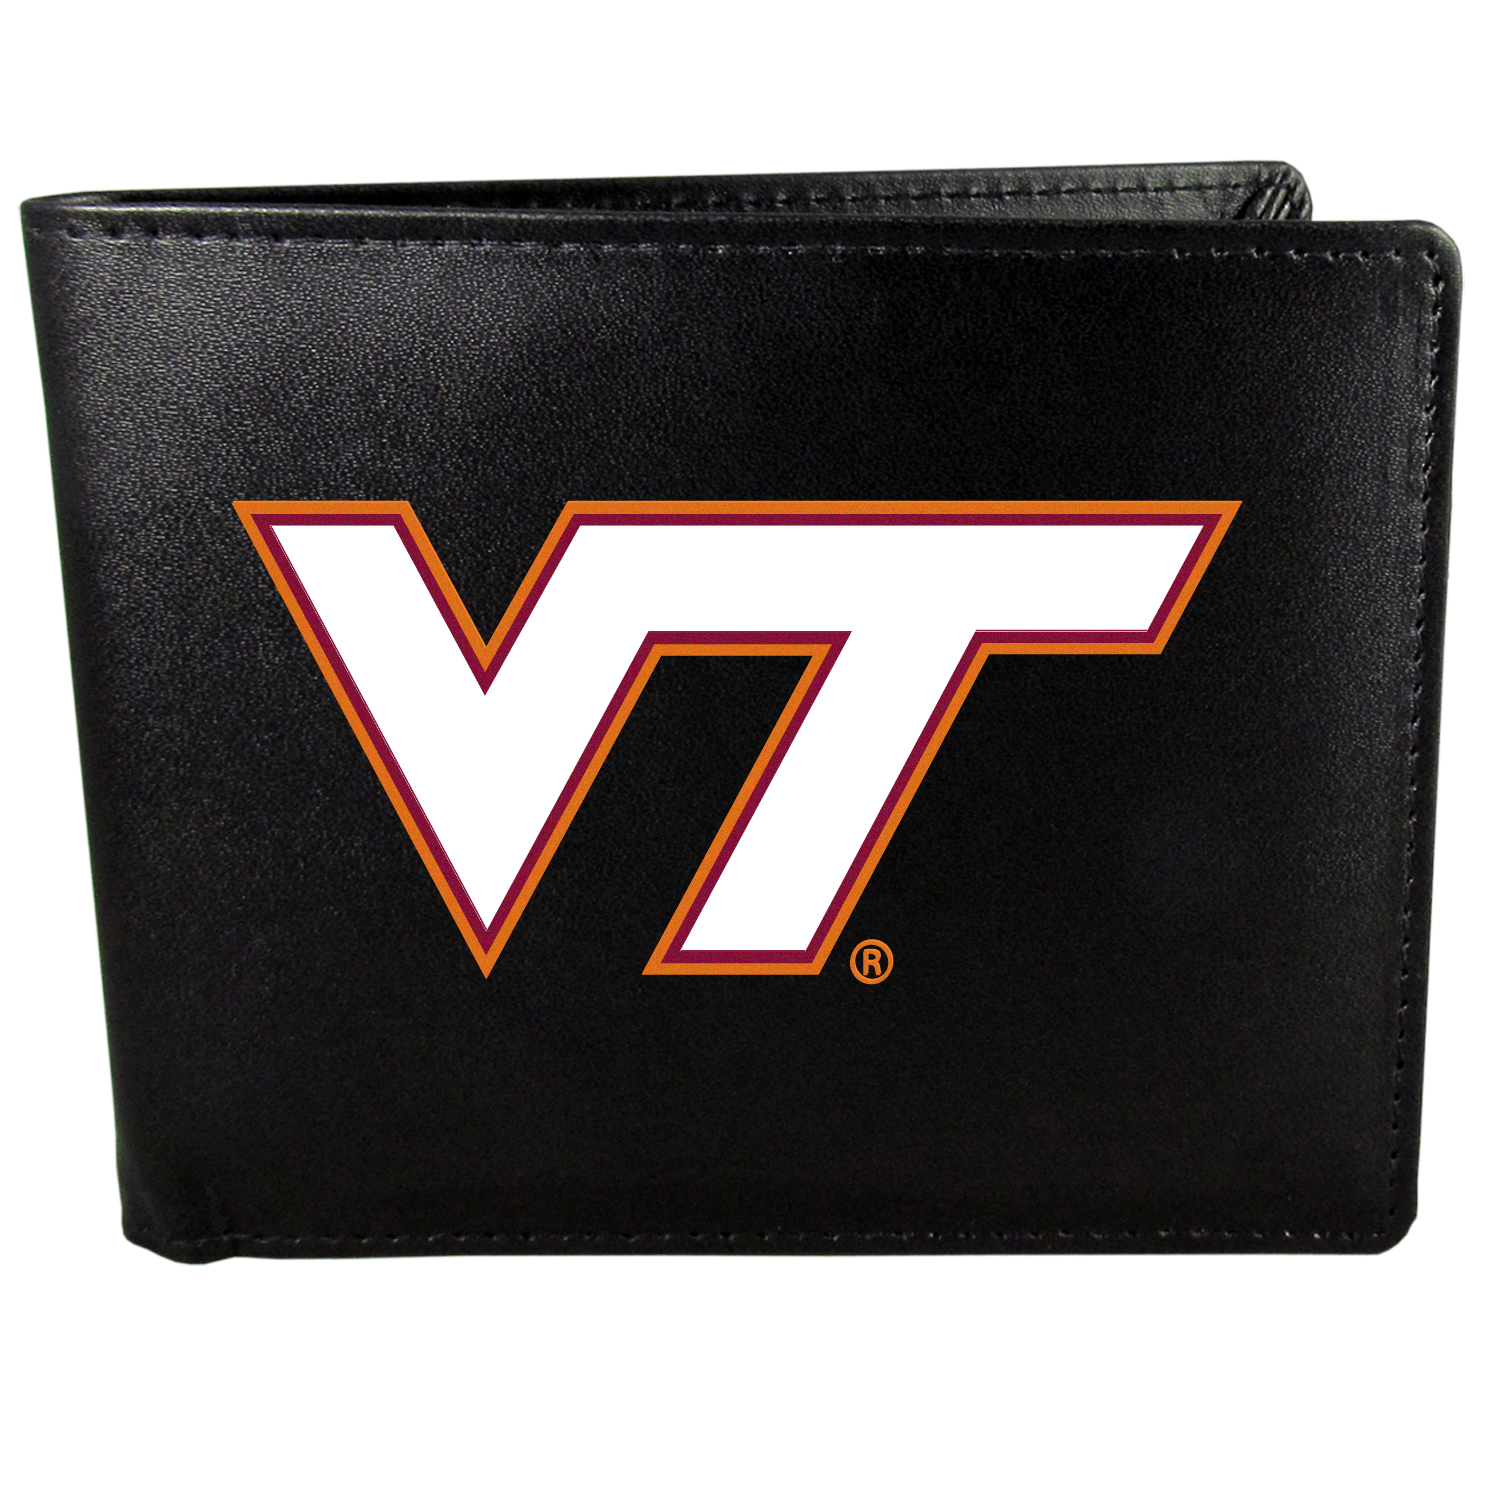 Virginia Tech Hokies Bi-fold Wallet Large Logo - Sports fans do not have to sacrifice style with this classic bi-fold wallet that sports the Virginia Tech Hokies?extra large logo. This men's fashion accessory has a leather grain look and expert craftmanship for a quality wallet at a great price. The wallet features inner credit card slots, windowed ID slot and a large billfold pocket. The front of the wallet features a printed team logo.